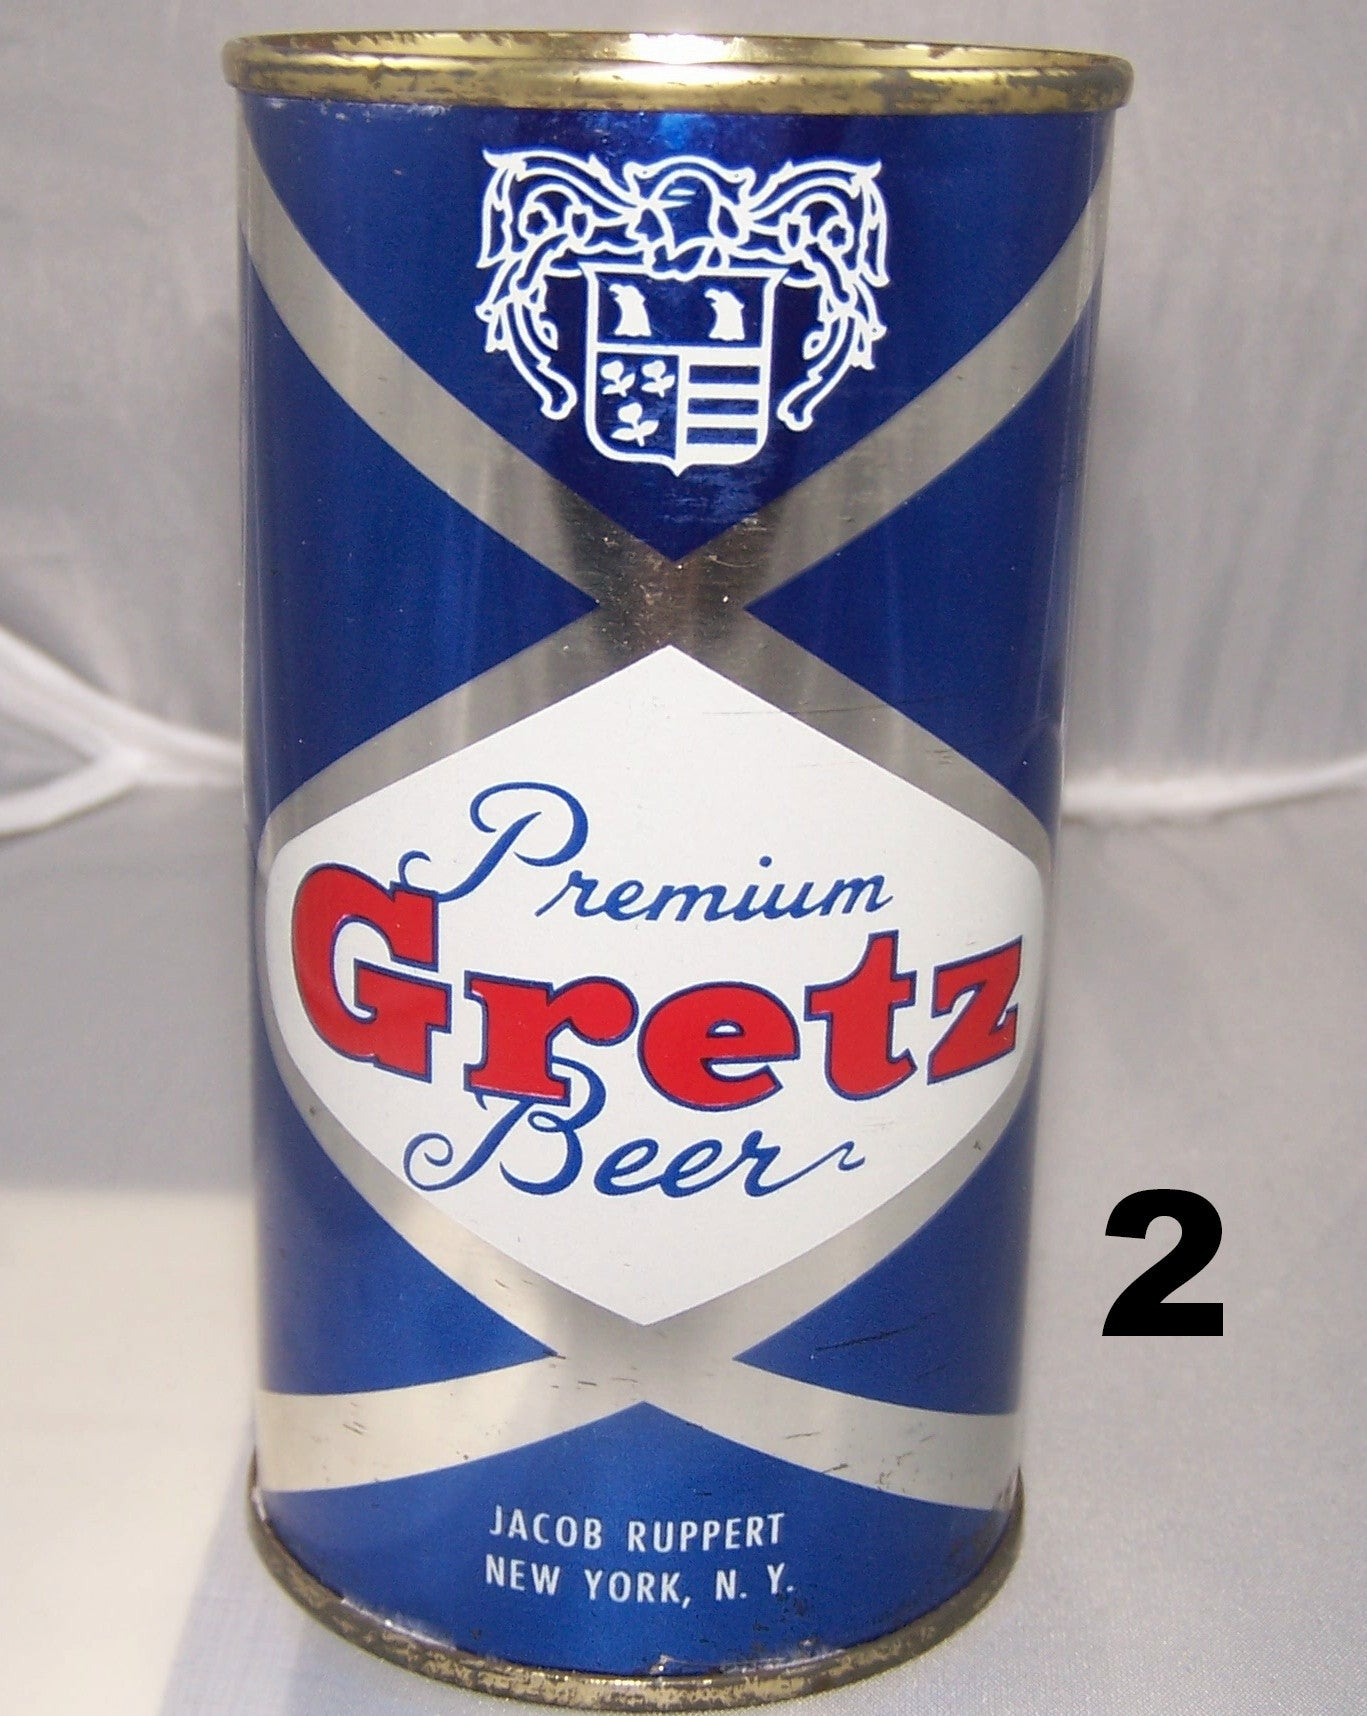 Gretz Beer, USBC 74-33, Grade 1/1+ Sold on 06/08/16